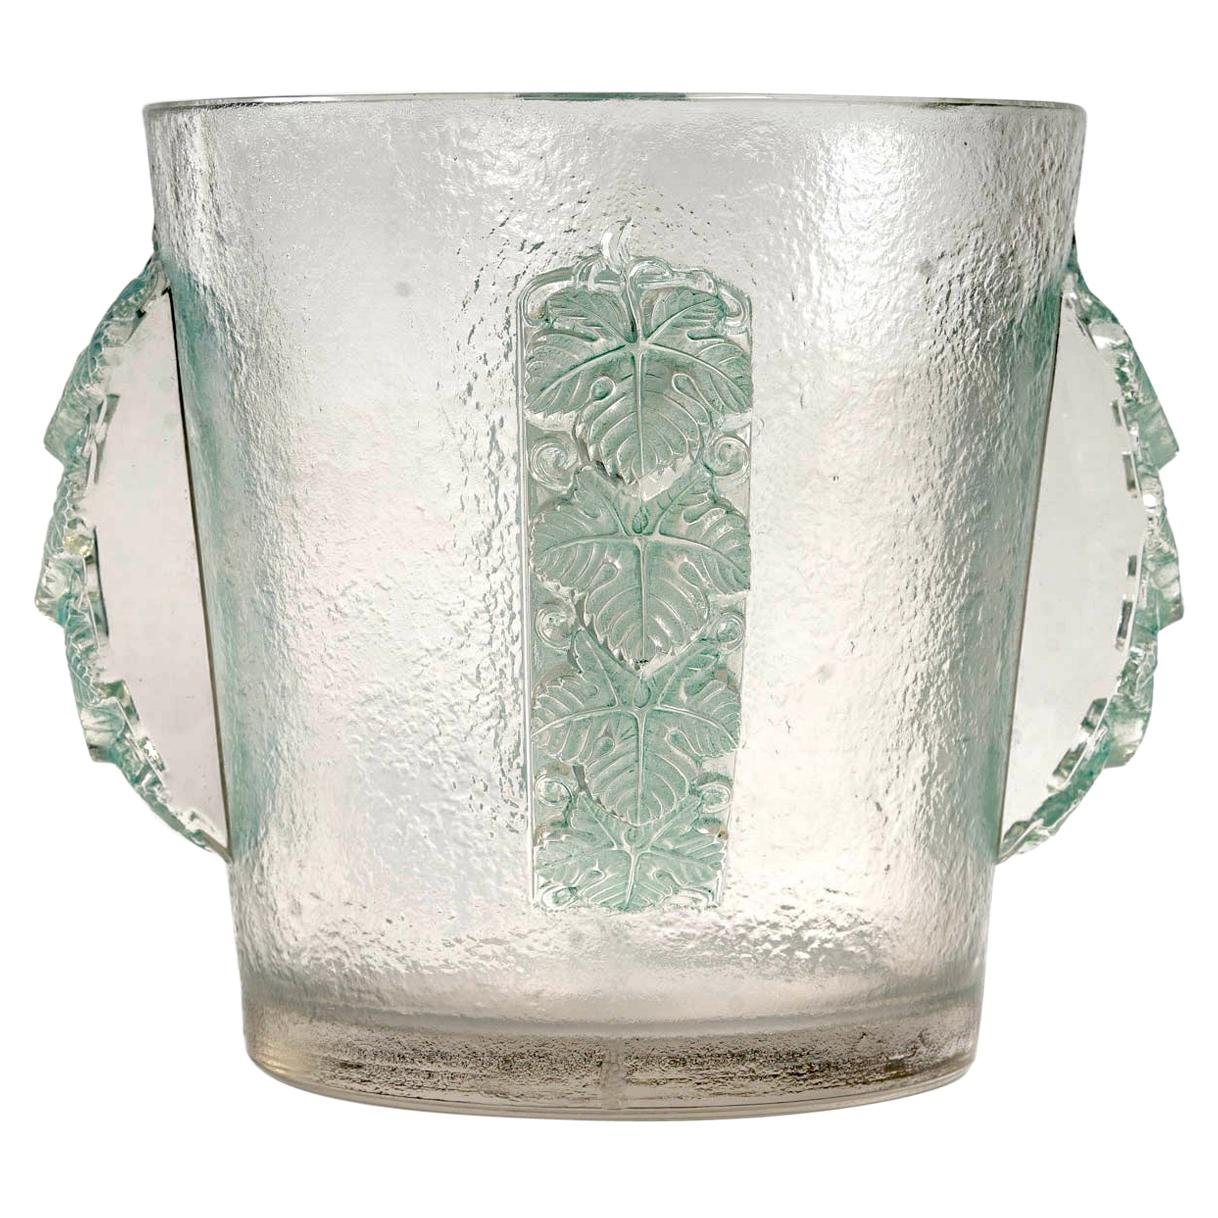 1938 René Lalique Epernay Ice Bucket Vase Frosted Glass with Green Patina